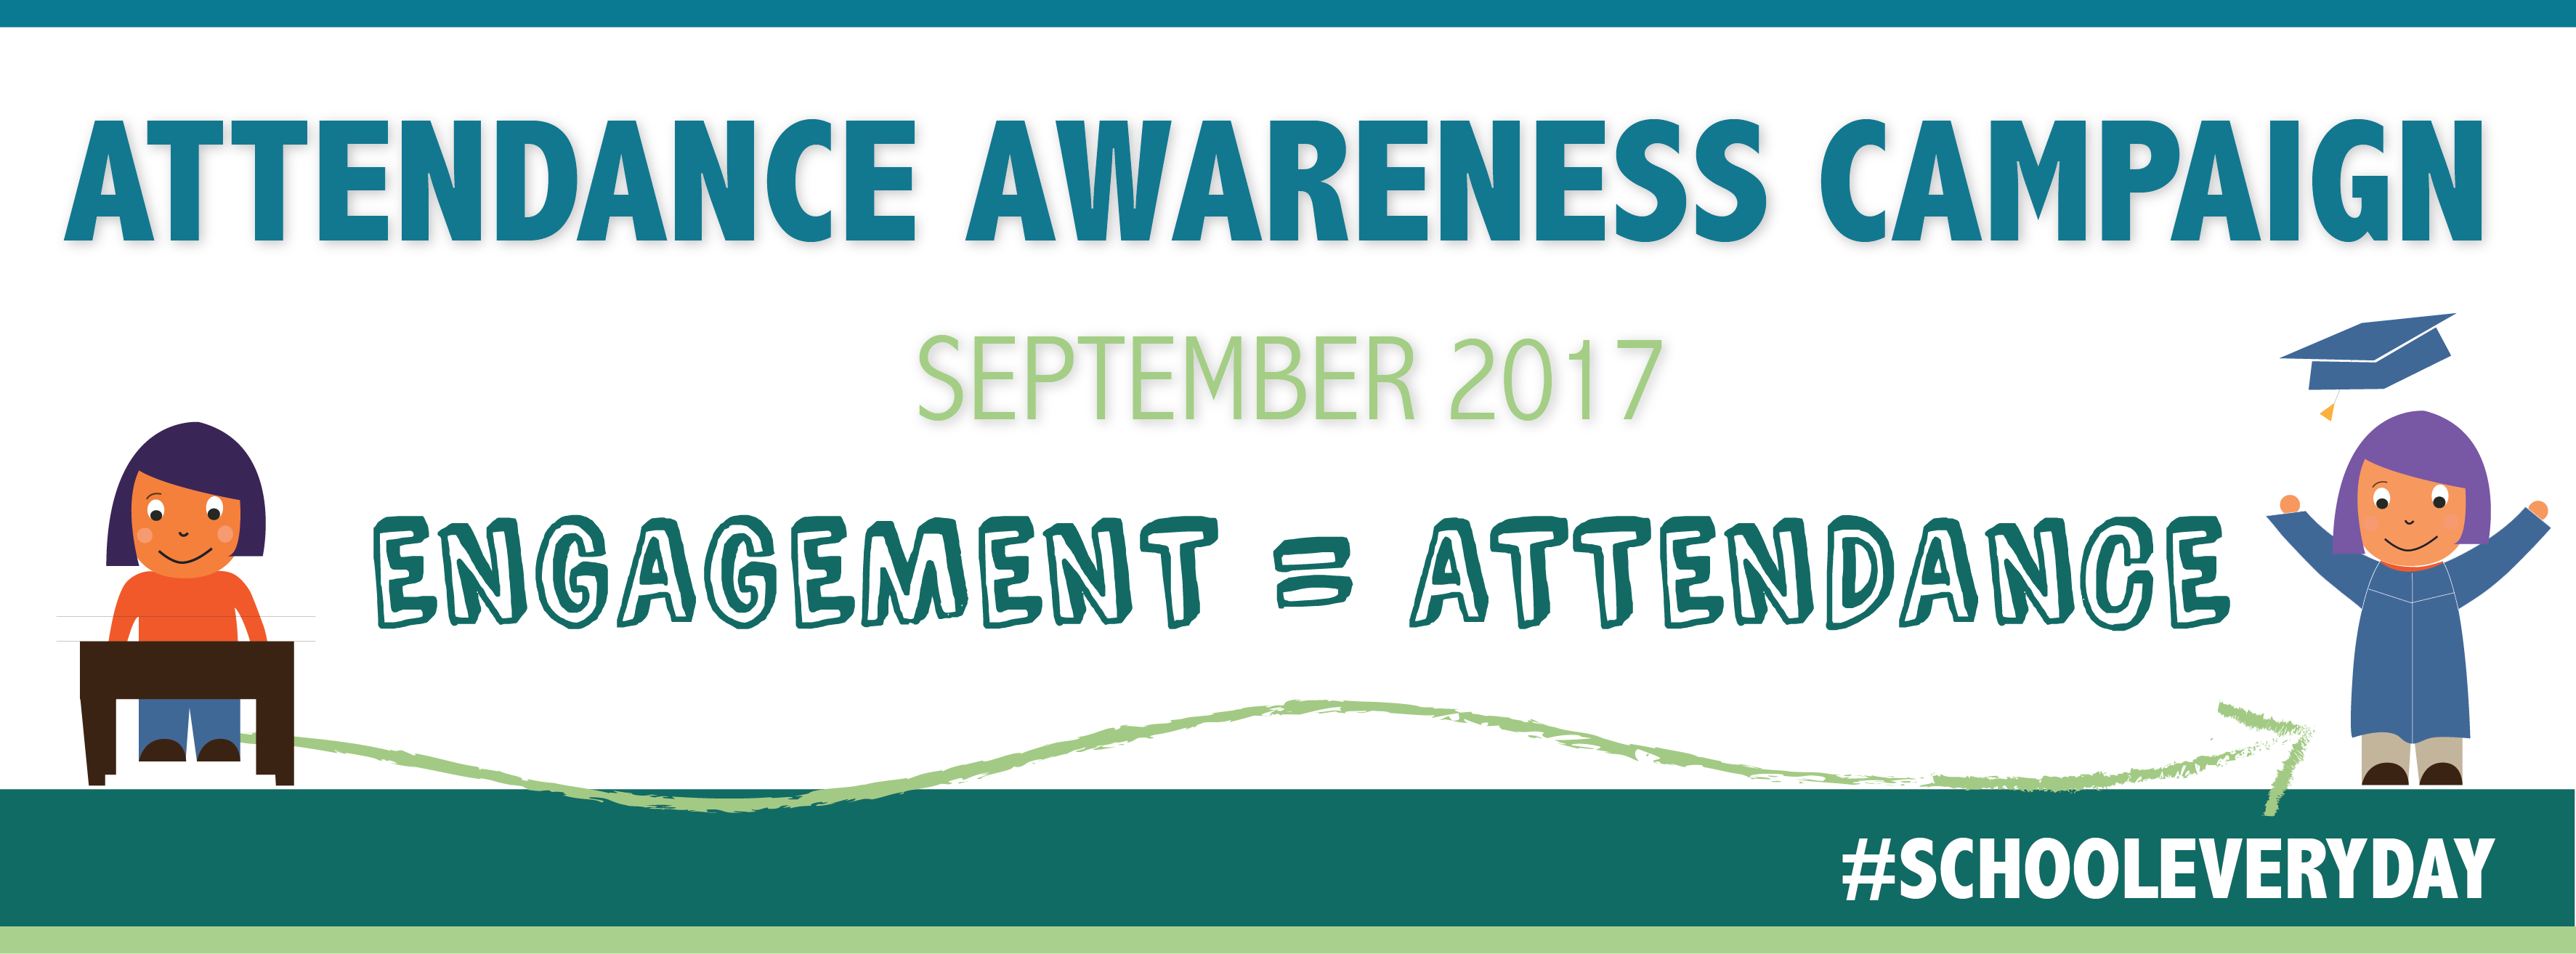 Attendance Awareness Campaign. September 2017. Engagement = Attendance. #SCHOOLEVERYDAY